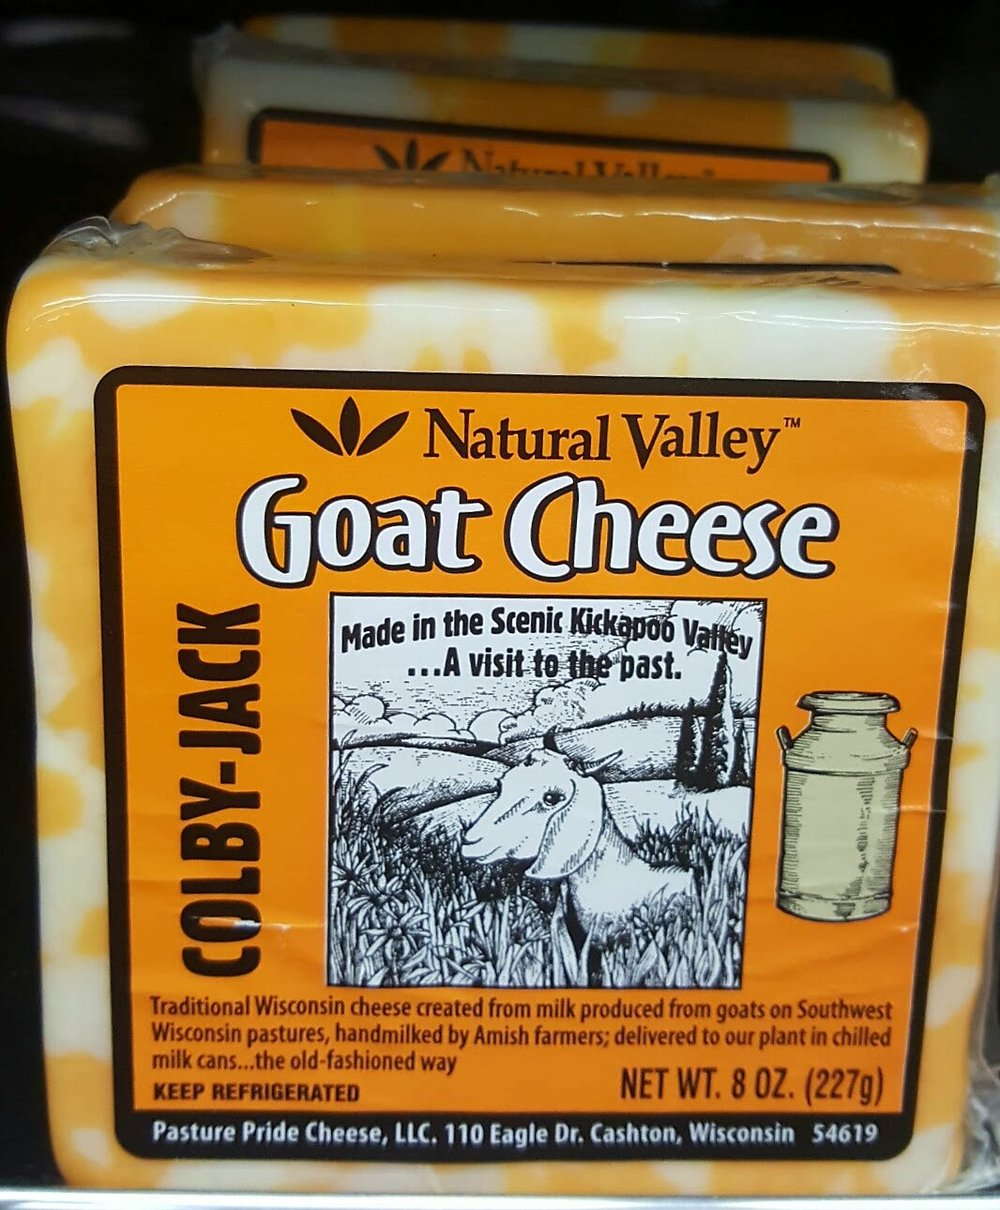 Oct 17 Natural Valley goat cheese.jpg